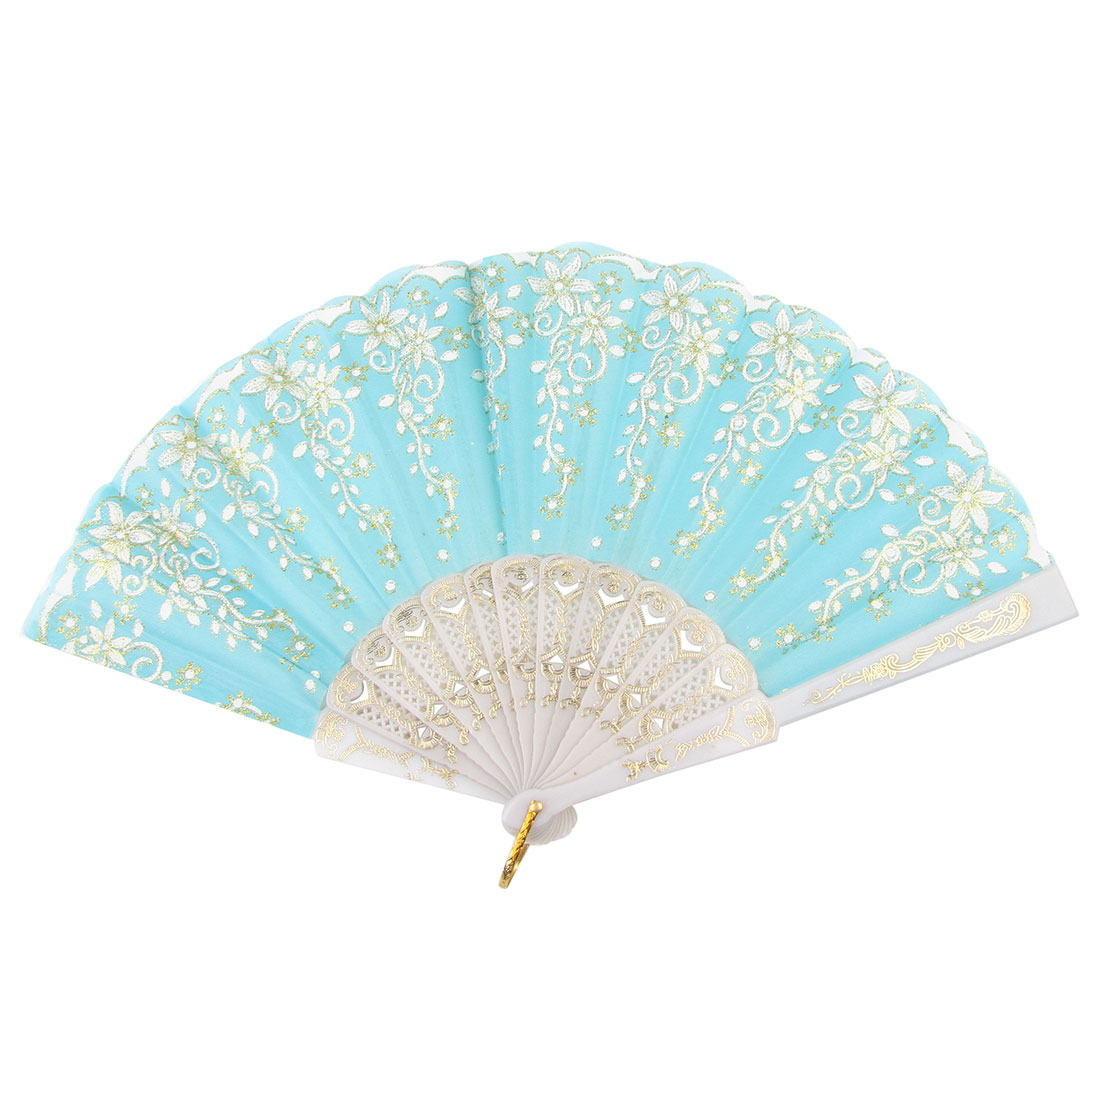 Portable Folding Hand Glitter Powder Decor Baby Blue Fabric Plastic Shelf Fan